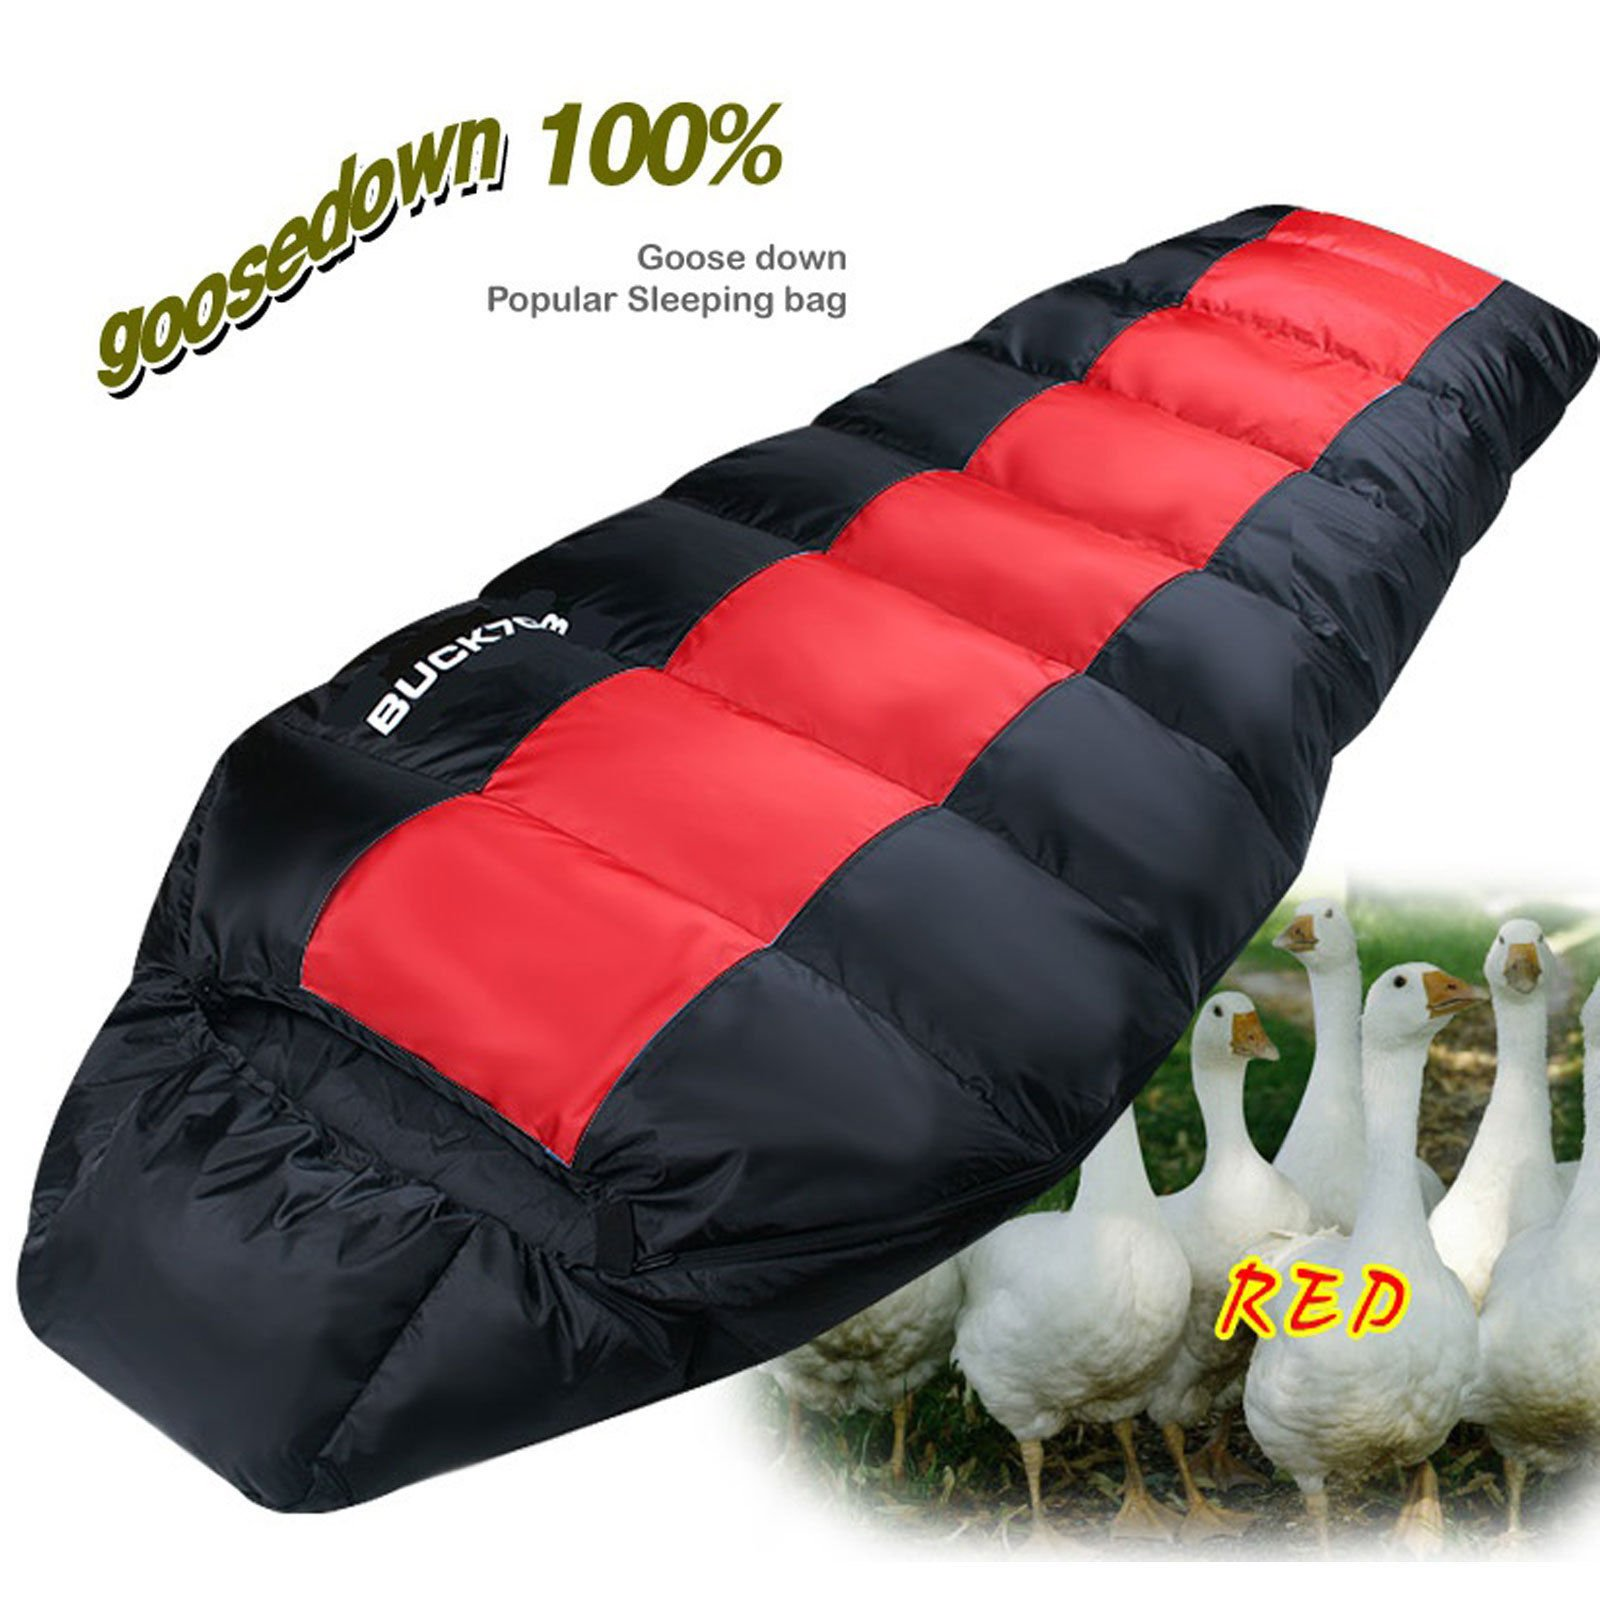 Popular Goose Down Sleeping Bag 4Season Mummy Camping Backpacking Compact Winter by Sleeping Bag